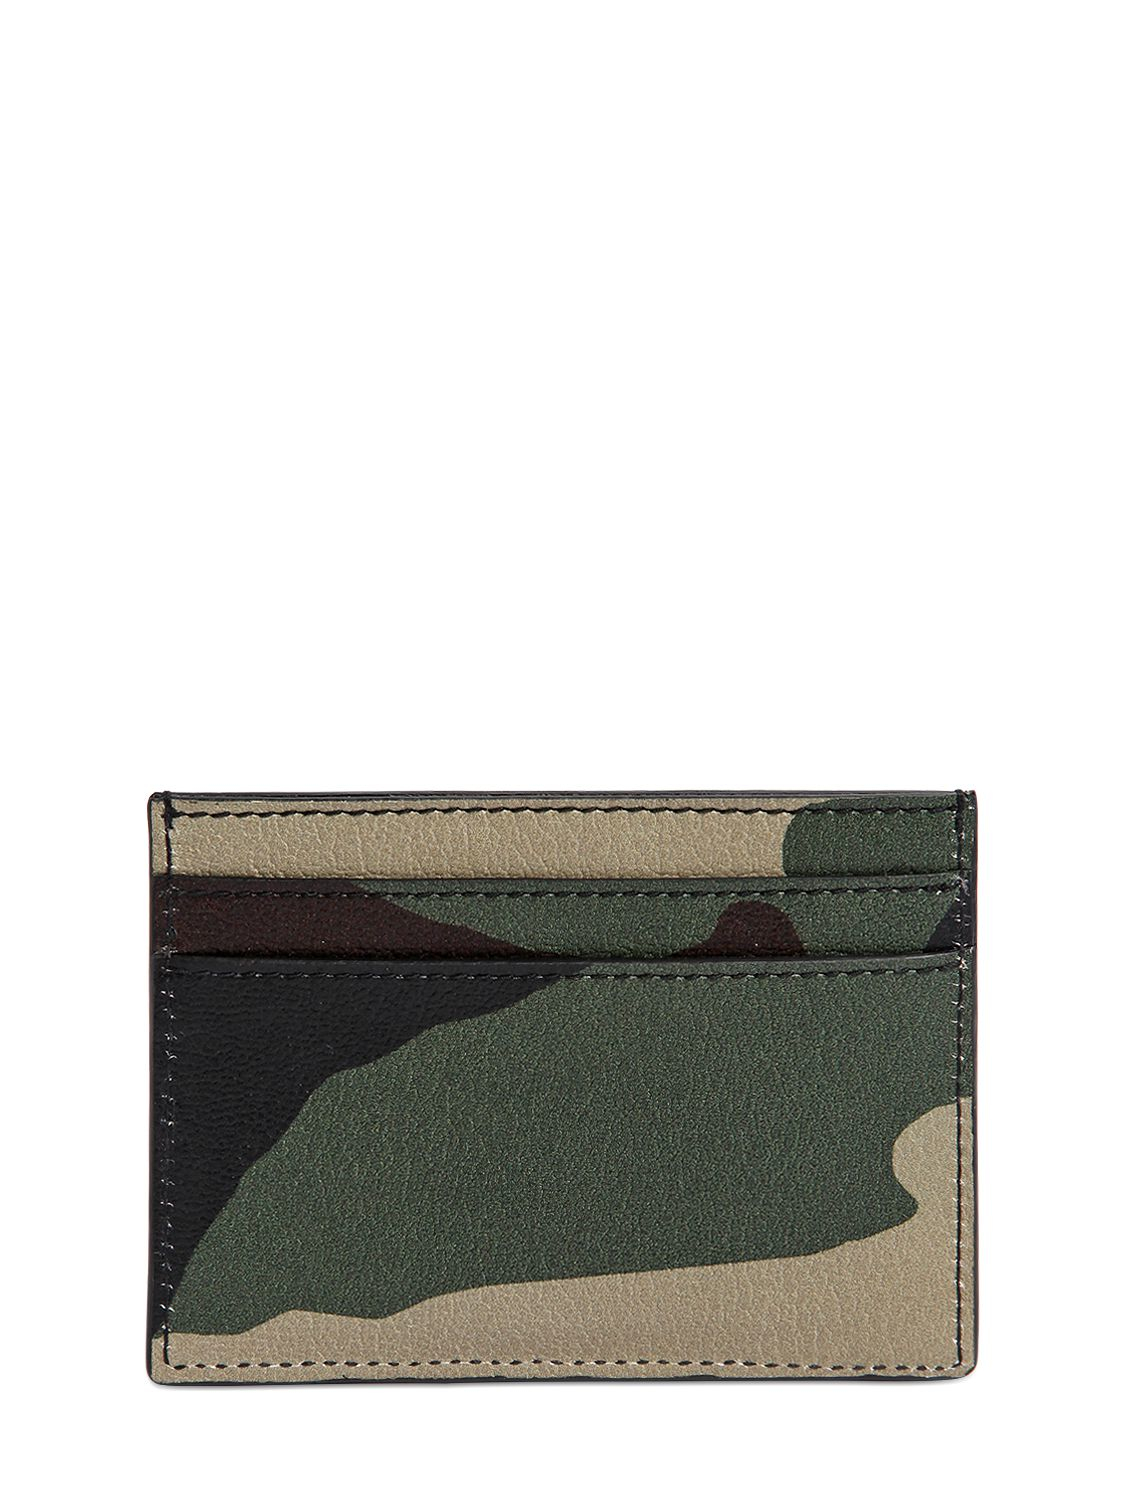 Saint laurent Camouflage Printed Leather Card Holder in Green | Lyst